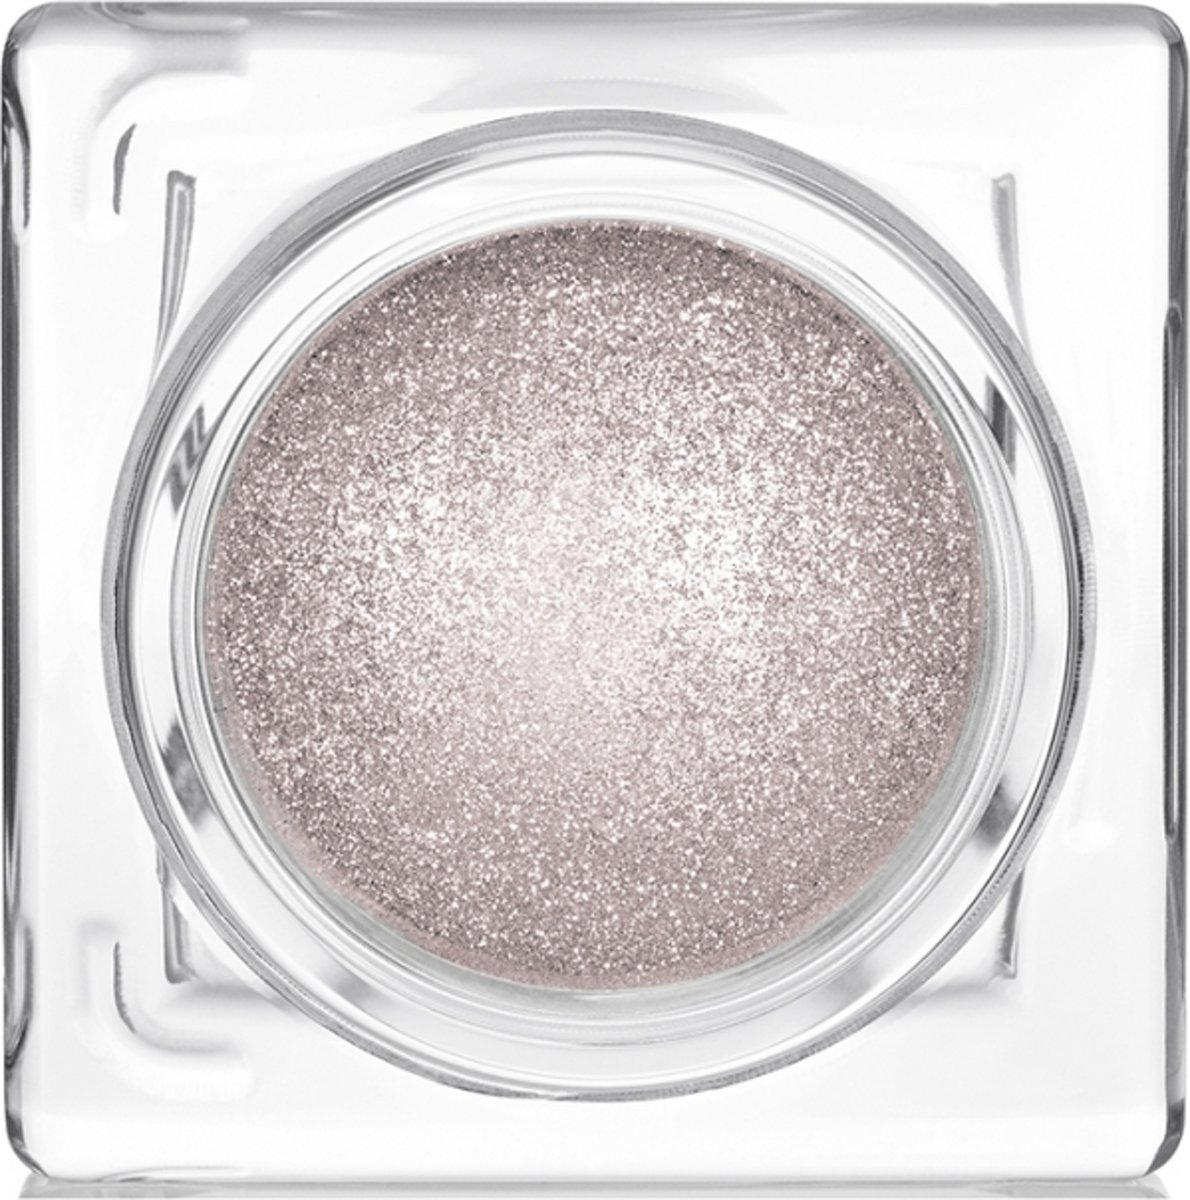 Shiseido Aura Dew Face, Eyes, Lip Highlighter 7 gr - 01 - Lunar